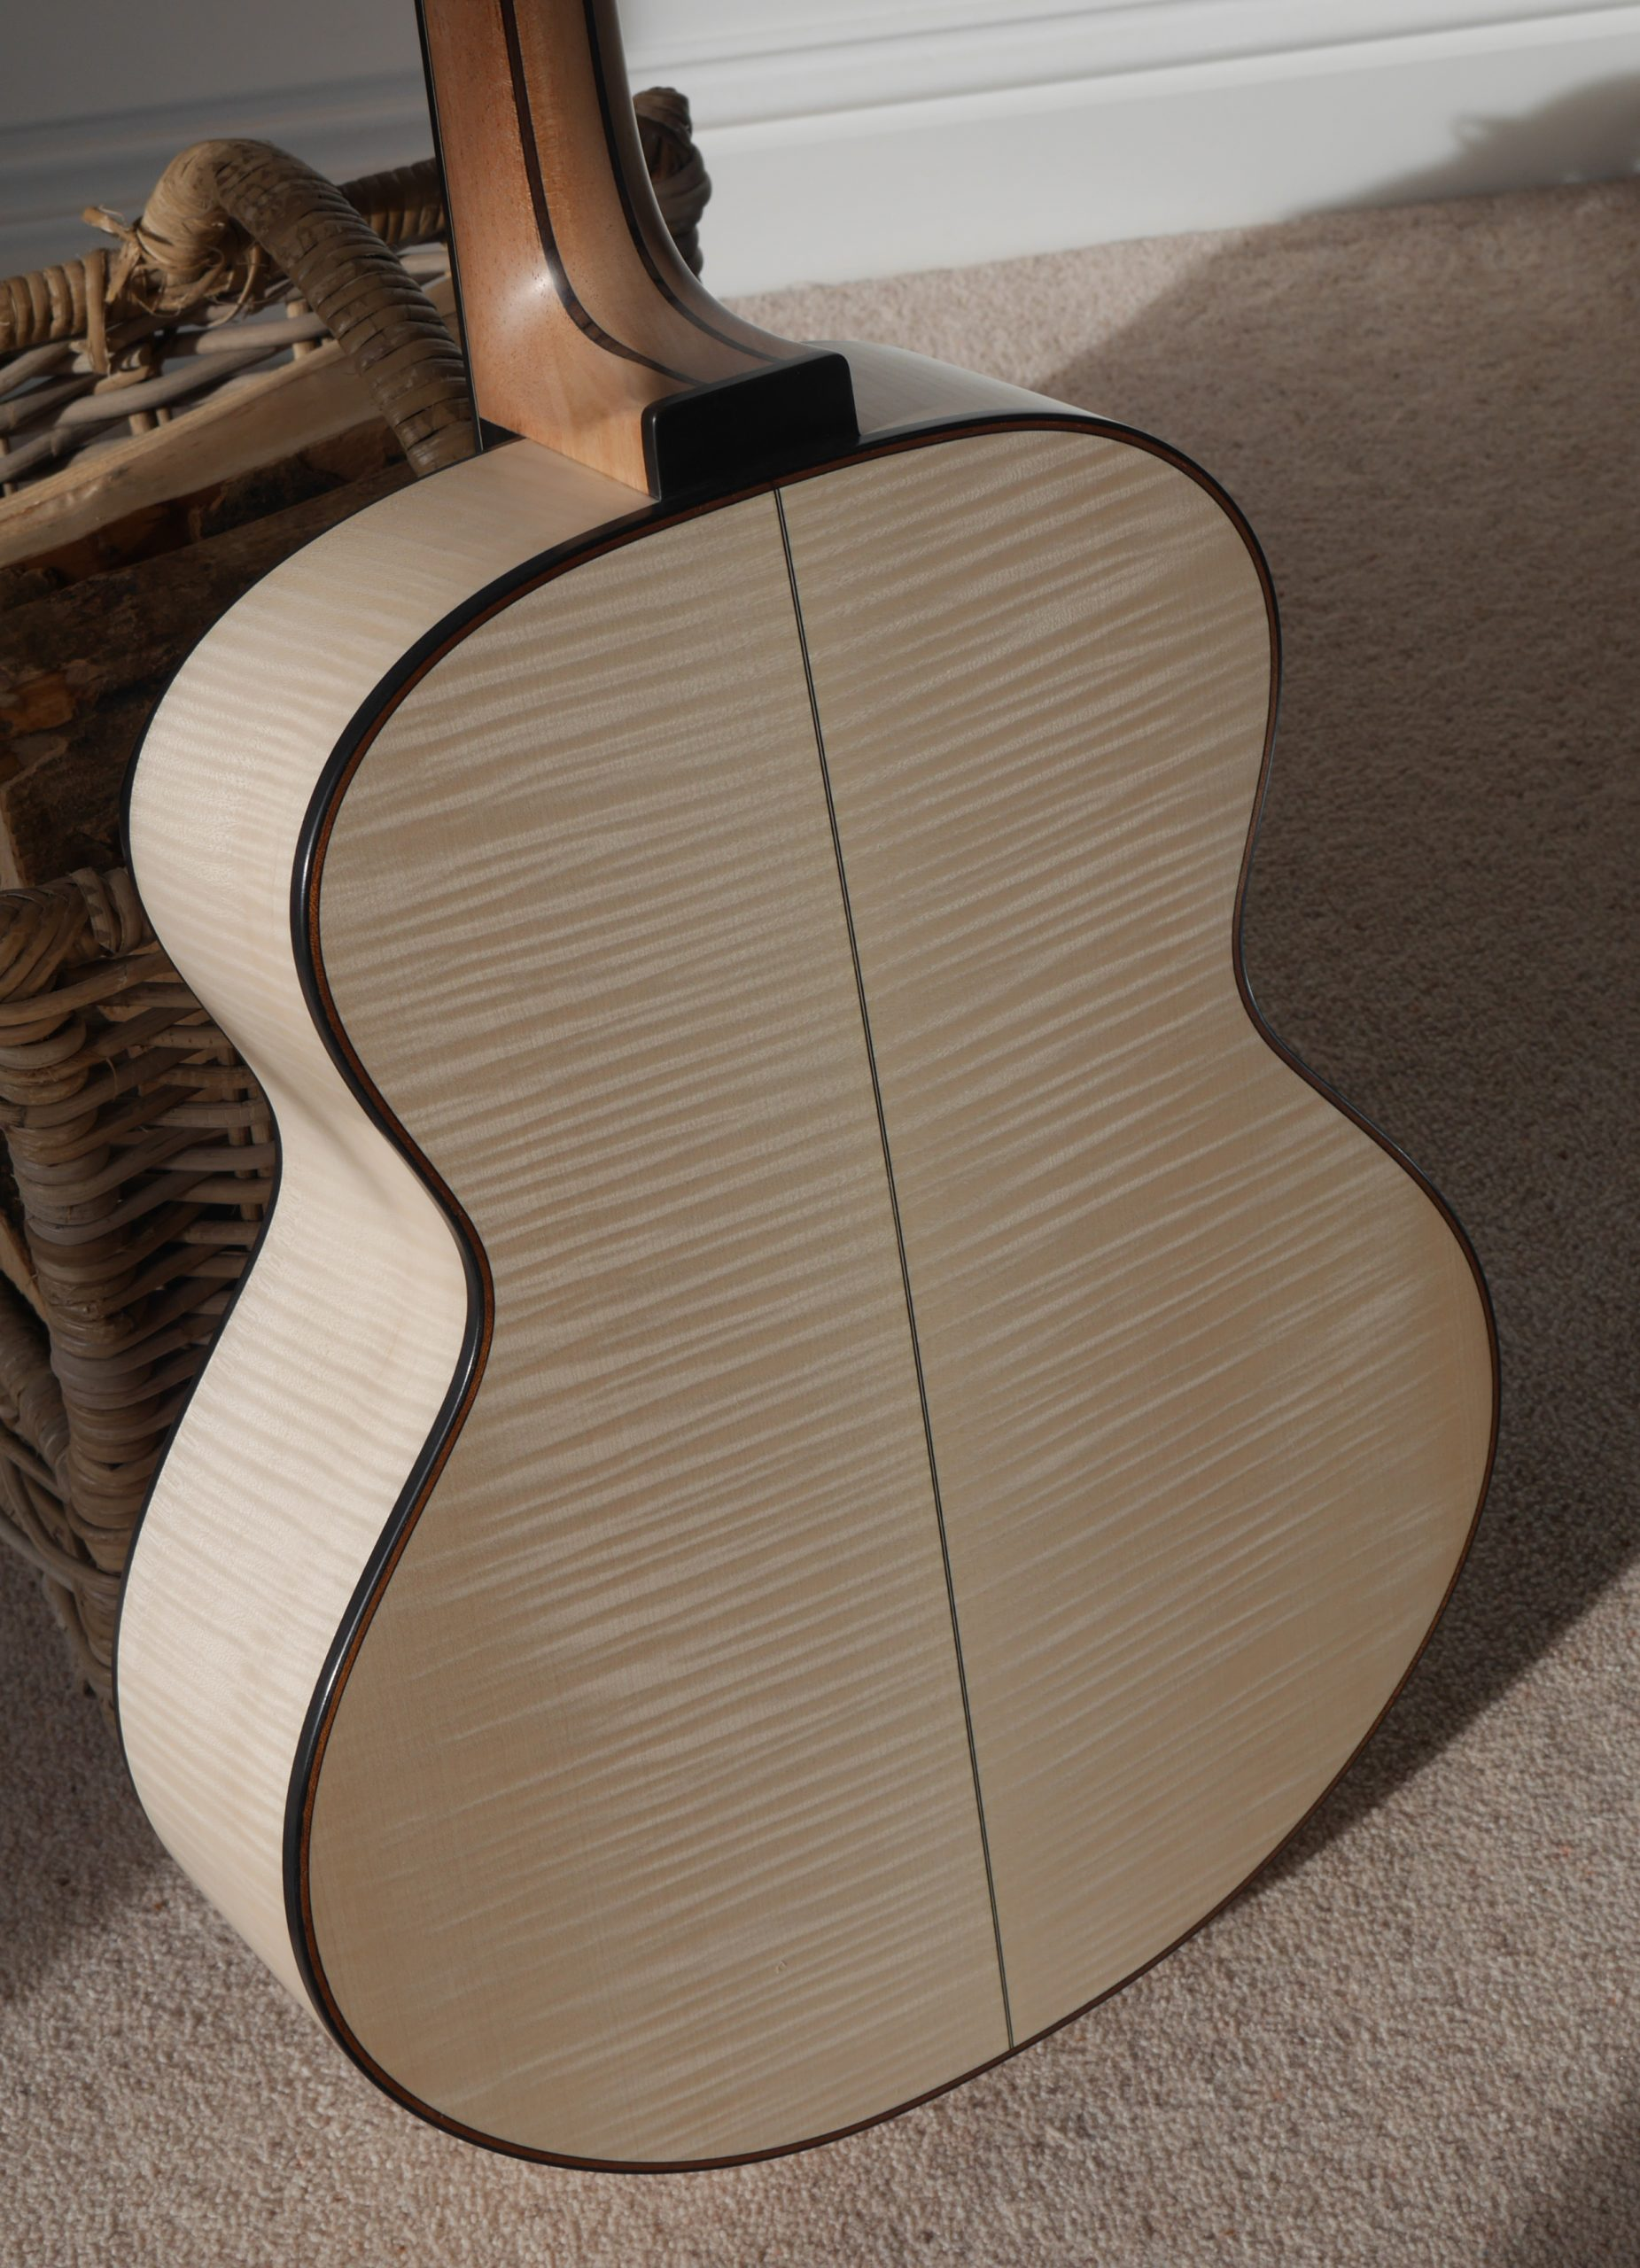 jumbo, acoustic guitar, montgomery guitar, andreas Montgomery, flamed maple, luthier